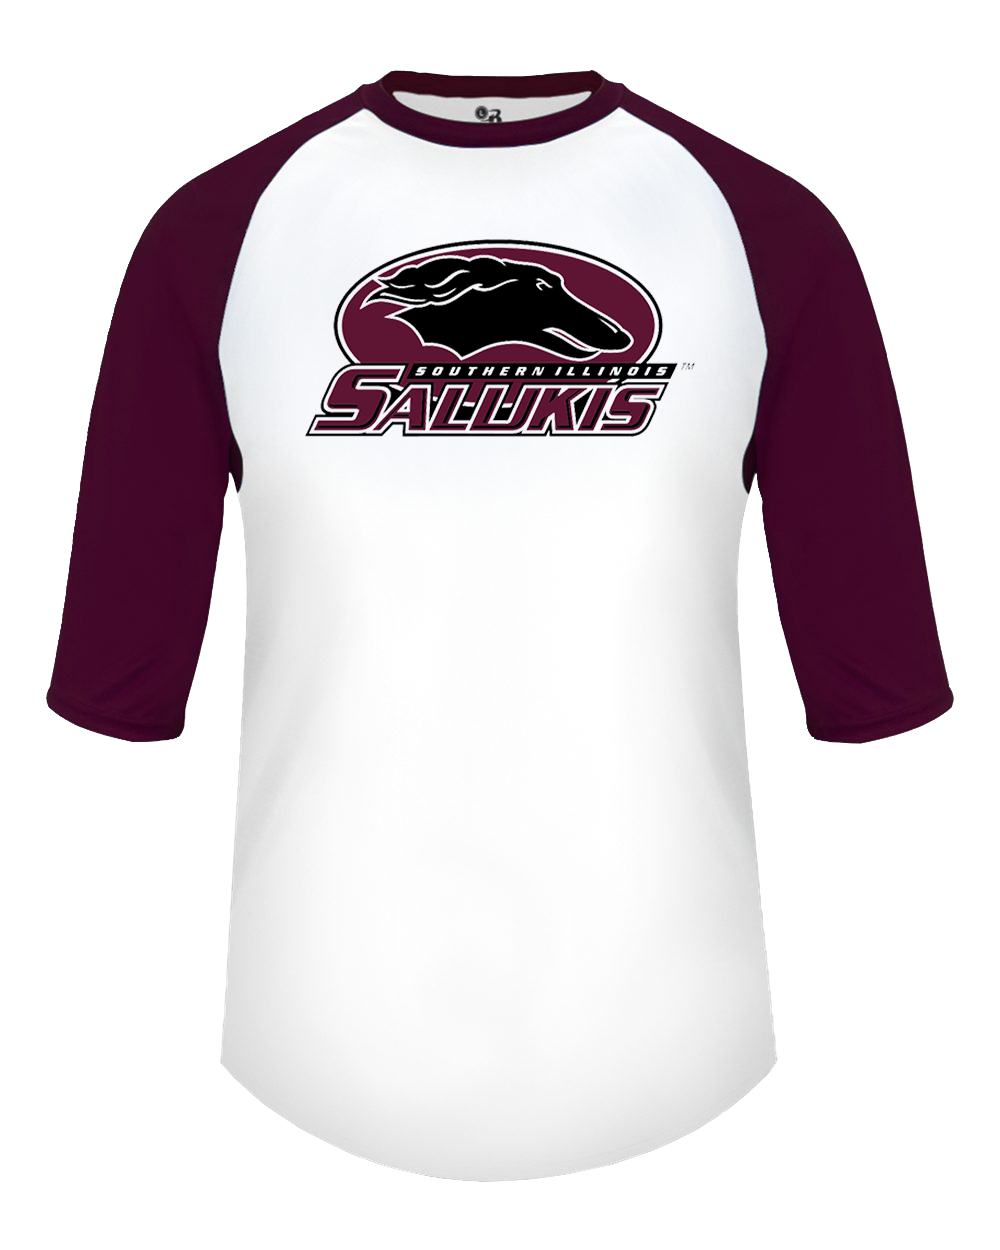 Image for the BADGER® SALUKIS DRY-FIT BASEBALL SLEEVES YOUTH T product